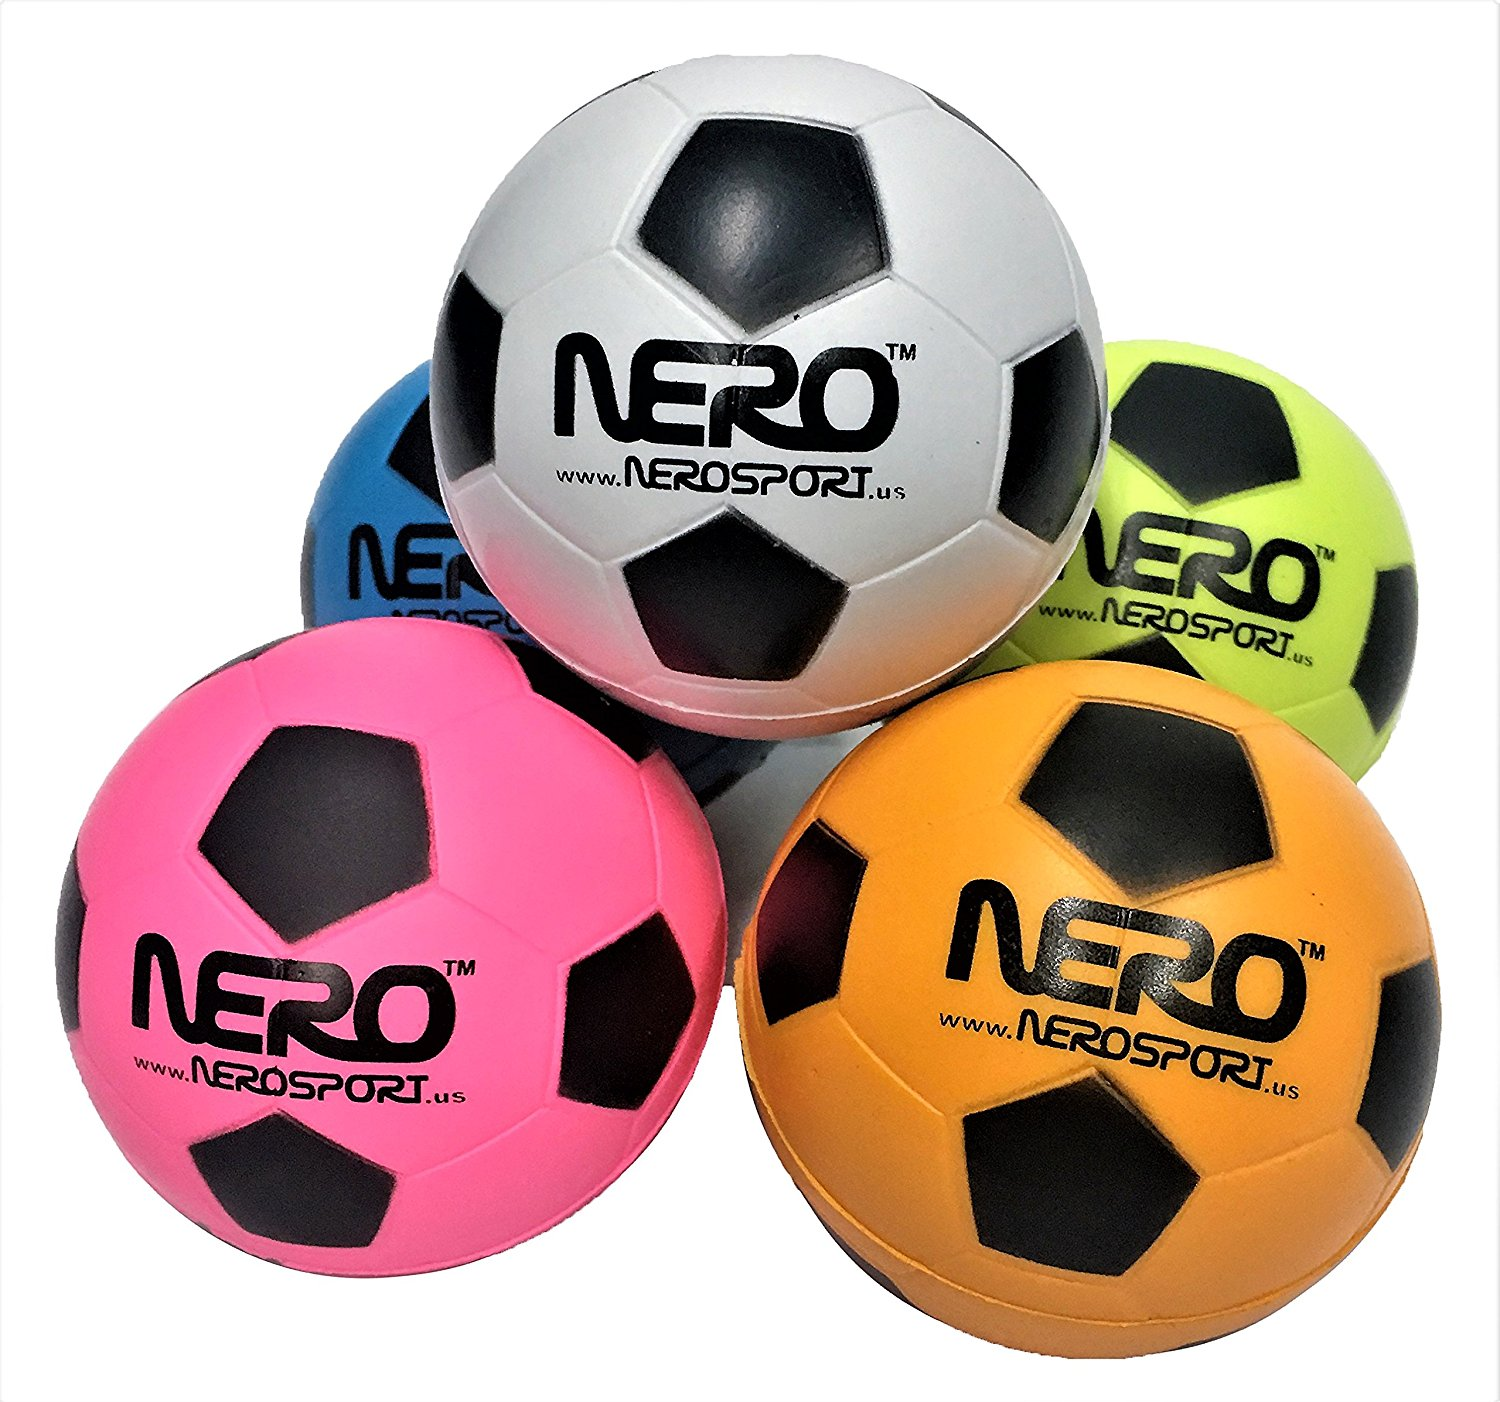 Nero NS-RS High Bounce Rubber Soccer Futbol Toy Ball 2.5 inch Skills Development Toy Great For the Streets Park Back Yard Agility Ball Bulk Price Birthdays Gifts Summer Ball